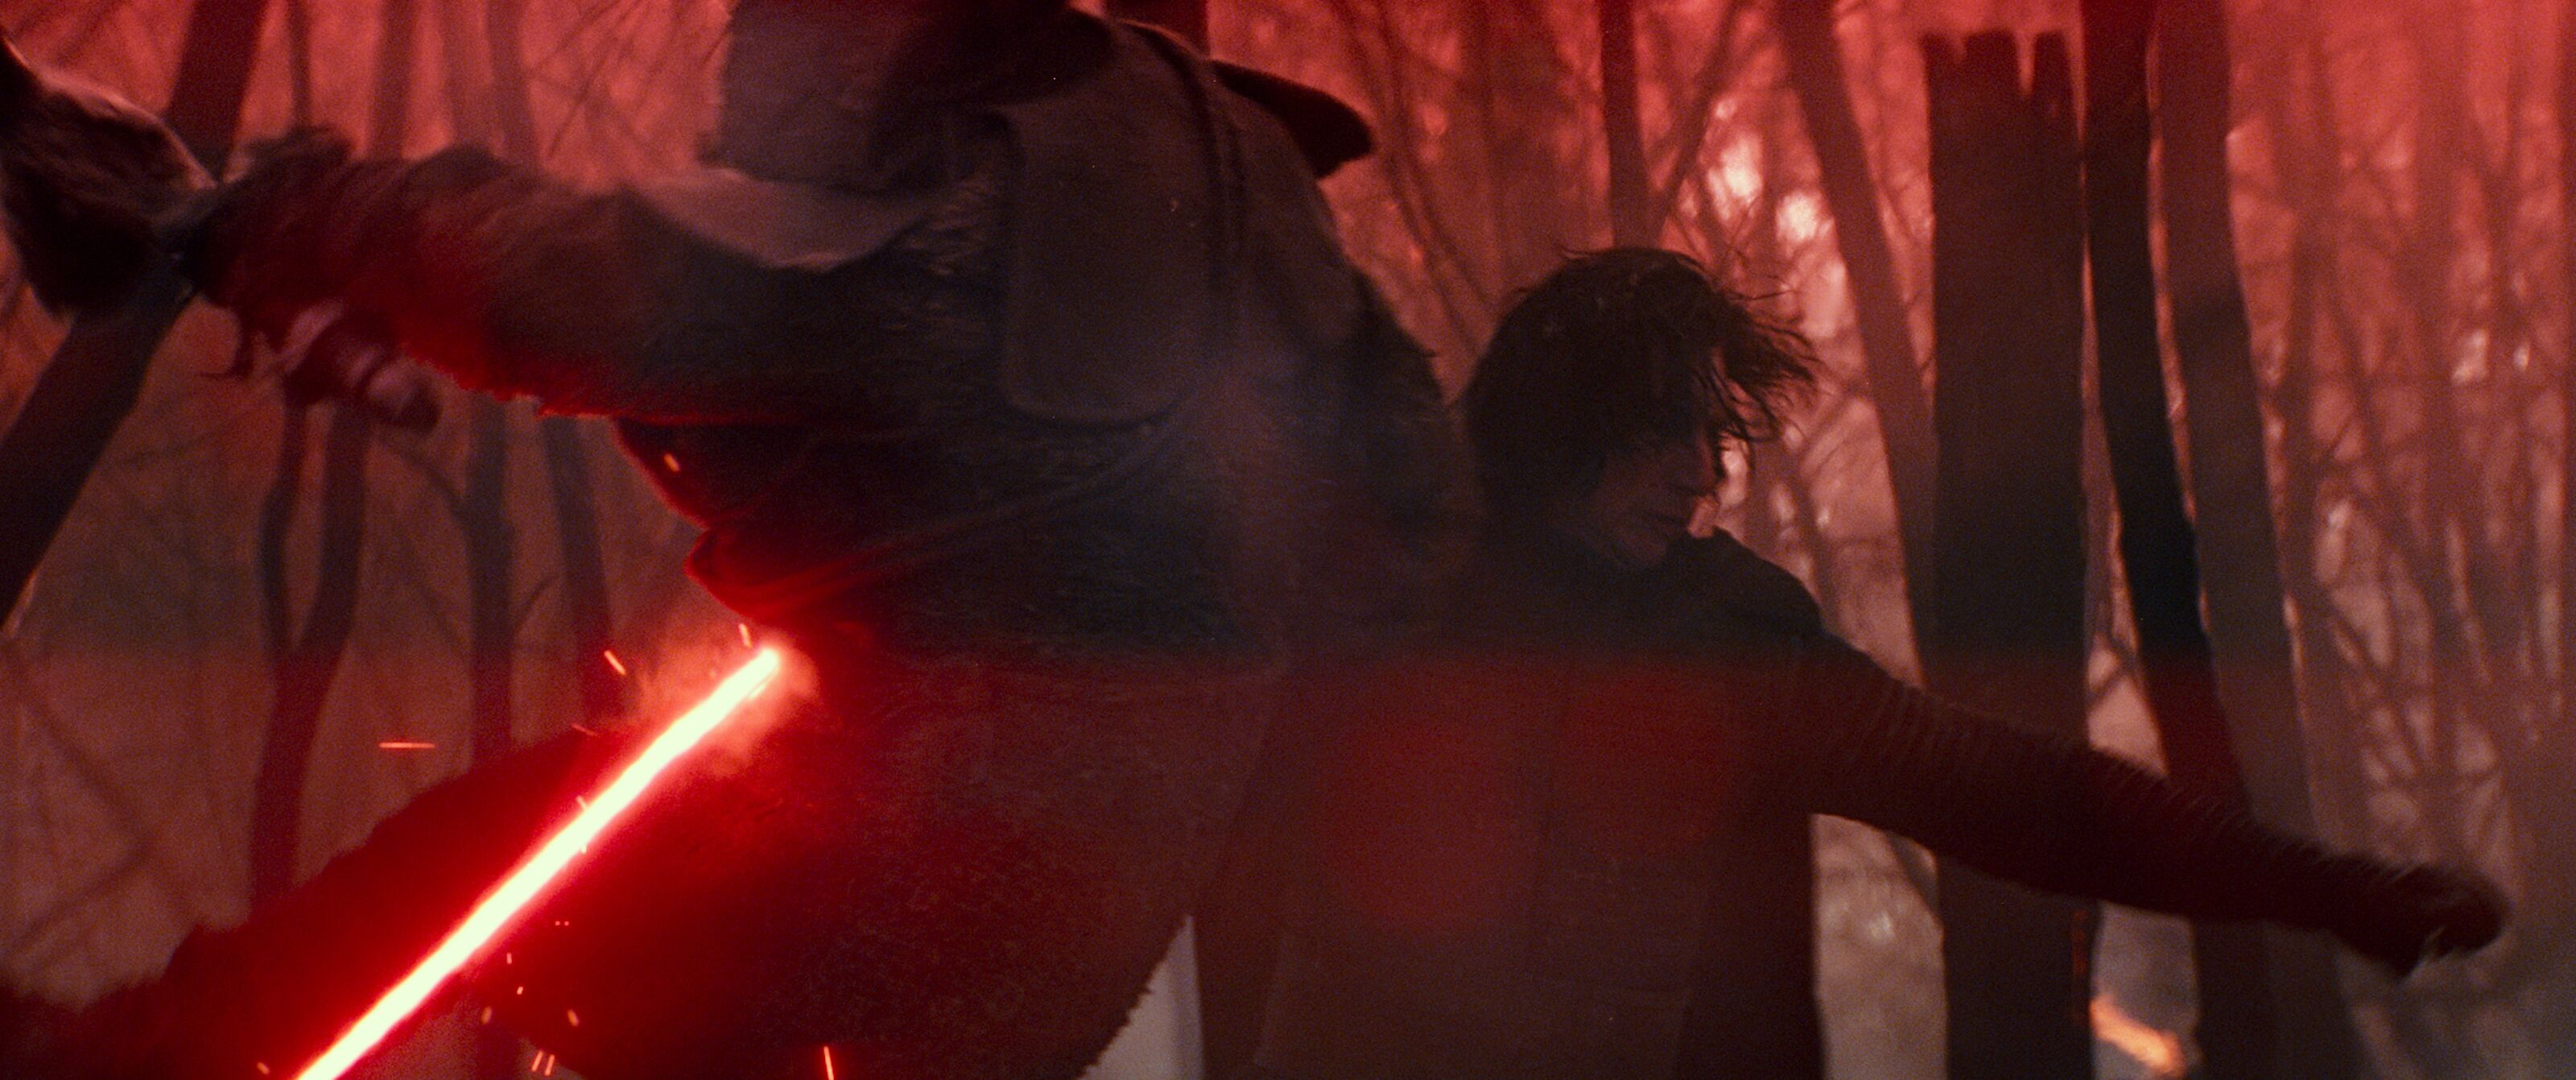 Star Wars: The Rise of Skywalker returns the Knights of Ren